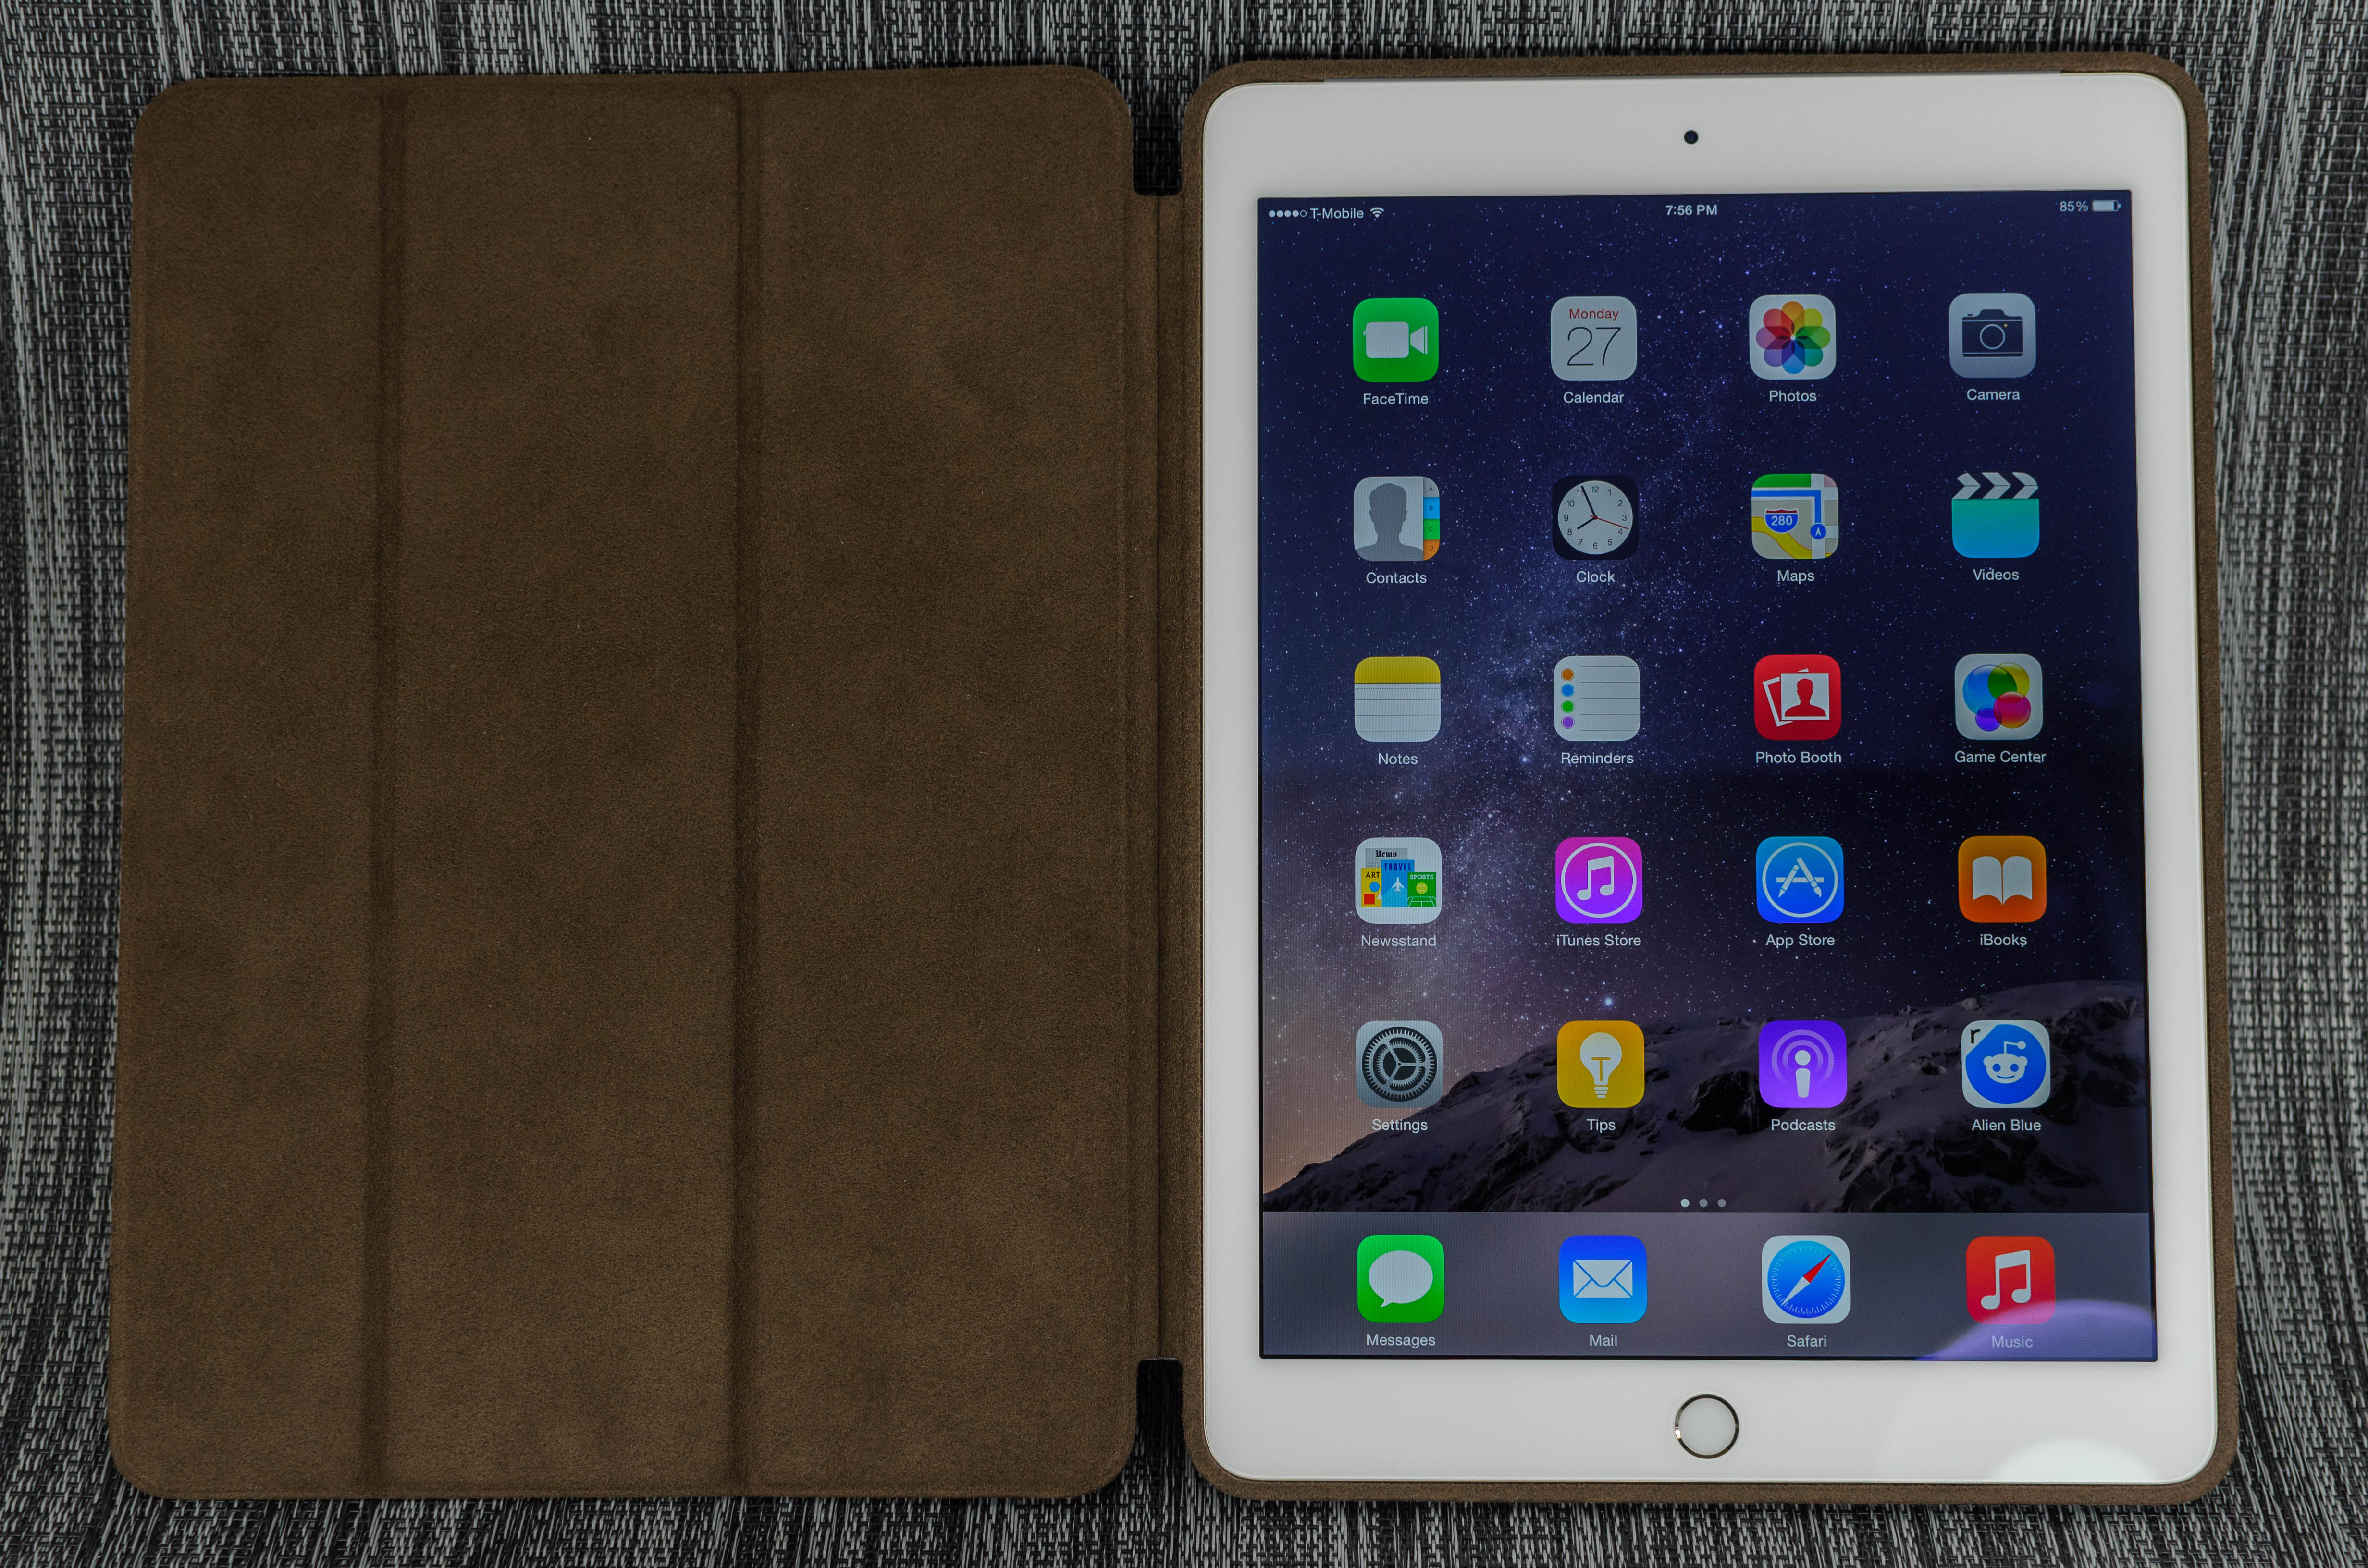 Ipad Air 2 The Apple Ipad Air 2 Review